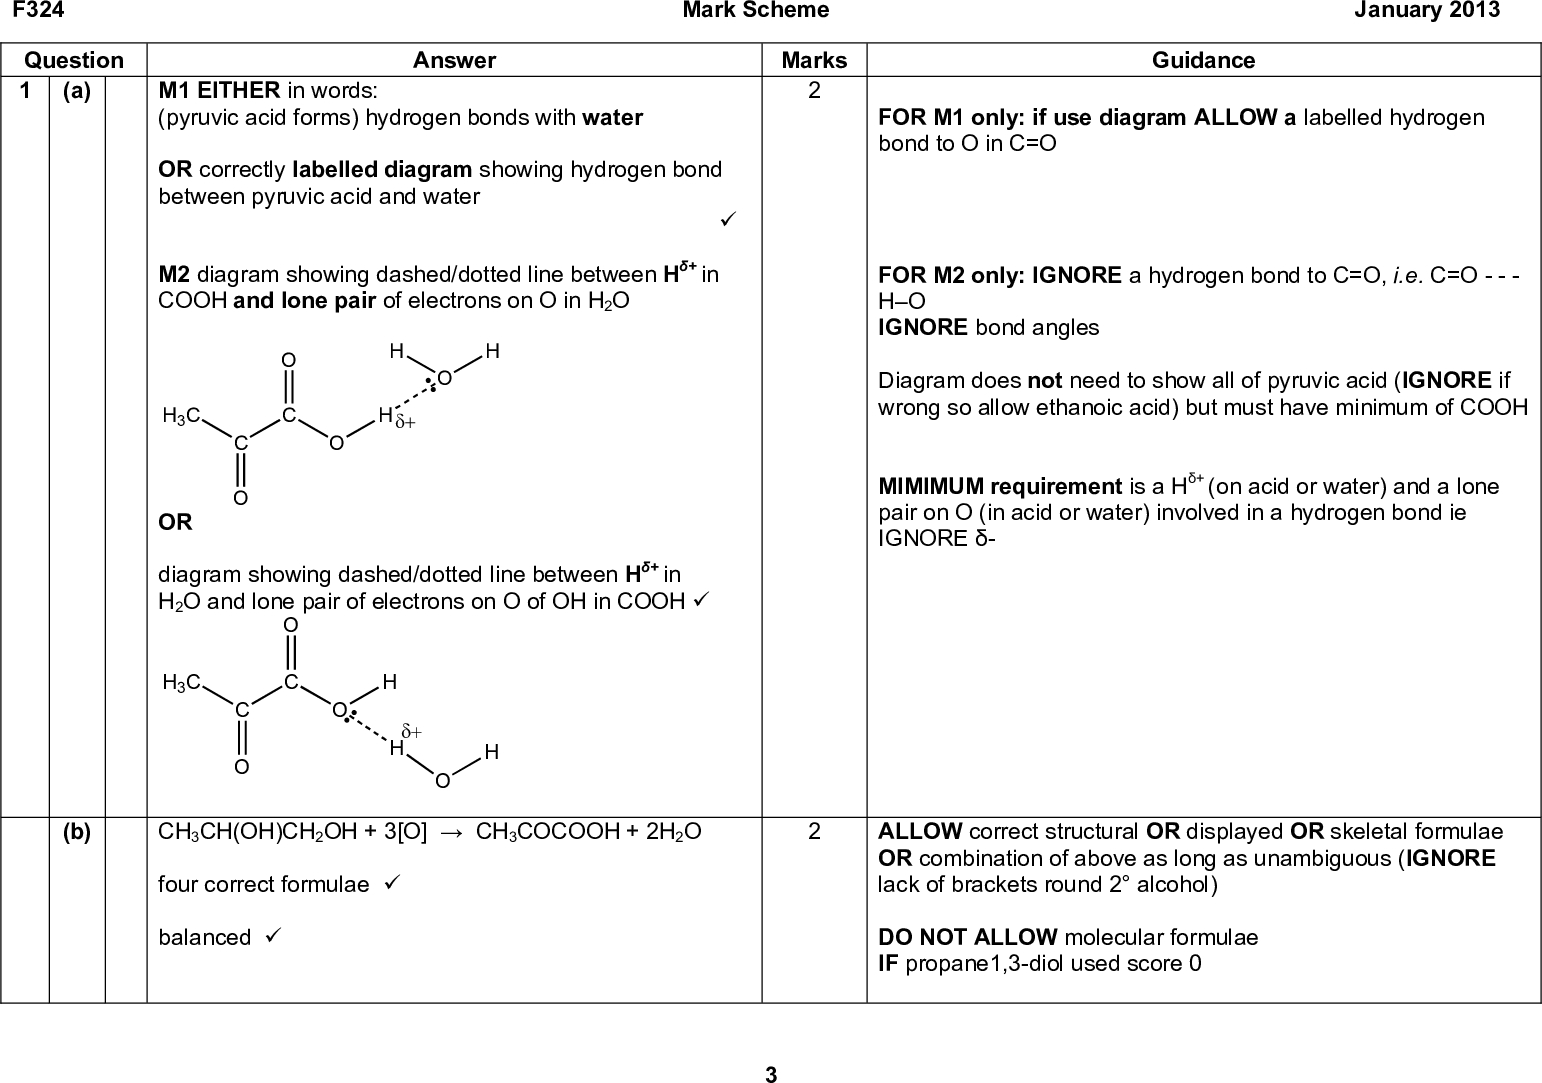 F324 Mark Scheme January 2013 Question 1 (a) M1 EITHER in words: Answer (pyruvic acid forms) hydrogen bonds with water OR correctly labelled diagram showing hydrogen bond between pyruvic acid and water (cid:57) M2 diagram showing dashed/dotted line between H+ in COOH and lone pair of electrons on O in H2O H3C (cid:71)(cid:14) OR diagram showing dashed/dotted line between H+ in H2O and lone pair of electrons on O of OH in COOH (cid:57) (b) CH3CH(OH)CH2OH + 3[O]CH3COCOOH + 2H2O H3C (cid:71)(cid:14) H four correct formulae (cid:57) balanced (cid:57) Marks Guidance FOR M1 only: if use diagram ALLOW a labelled hydrogen bond to O in C=O FOR M2 only: IGNORE a hydrogen bond to C=O, i.e. C=O - - - HO IGNORE bond angles Diagram does not need to show all of pyruvic acid (IGNORE if wrong so allow ethanoic acid) but must have minimum of COOH MIMIMUM requirement is a H+ (on acid or water) and a lone pair on O (in acid or water) involved in a hydrogen bond ie IGNORE - ALLOW correct structural OR displayed OR skeletal formulae OR combination of above as long as unambiguous (IGNORE lack of brackets round 2 alcohol) DO NOT ALLOW molecular formulae IF propane1,3-diol used score 0<br />  F324 Mark Scheme January 2013 Question 1 (c) M1 H3C (cid:71)(cid:14) M2 (cid:71)(cid:16) Answer intermediate M3 COOH H3C COOH M4 M1: 1 mark for curly arrow from H to C of C=O (cid:57) M2: 1 mark for correct dipoles on C=O AND curly arrow from double bond to O(cid:71) (cid:57) M3: 1 mark for correct intermediate withcharge on O (cid:57) M4: 1 mark for curly arrow from O of intermediate to H in H2O AND curly arrow from the OH bond to the O in H2O: Do not need to show formation of OH Marks Guidance Curly arrow MUST start fromsign OR lone pair on H Lone pair does not need to be shown on H Lone pair does not need to be shown on O Curly arrow MUST start fromsign OR from lone pair on O of intermediate Lone pair does not need to be shown on O For M4, ALLOW mark for curly arrow from O of intermediate to H+ COOH